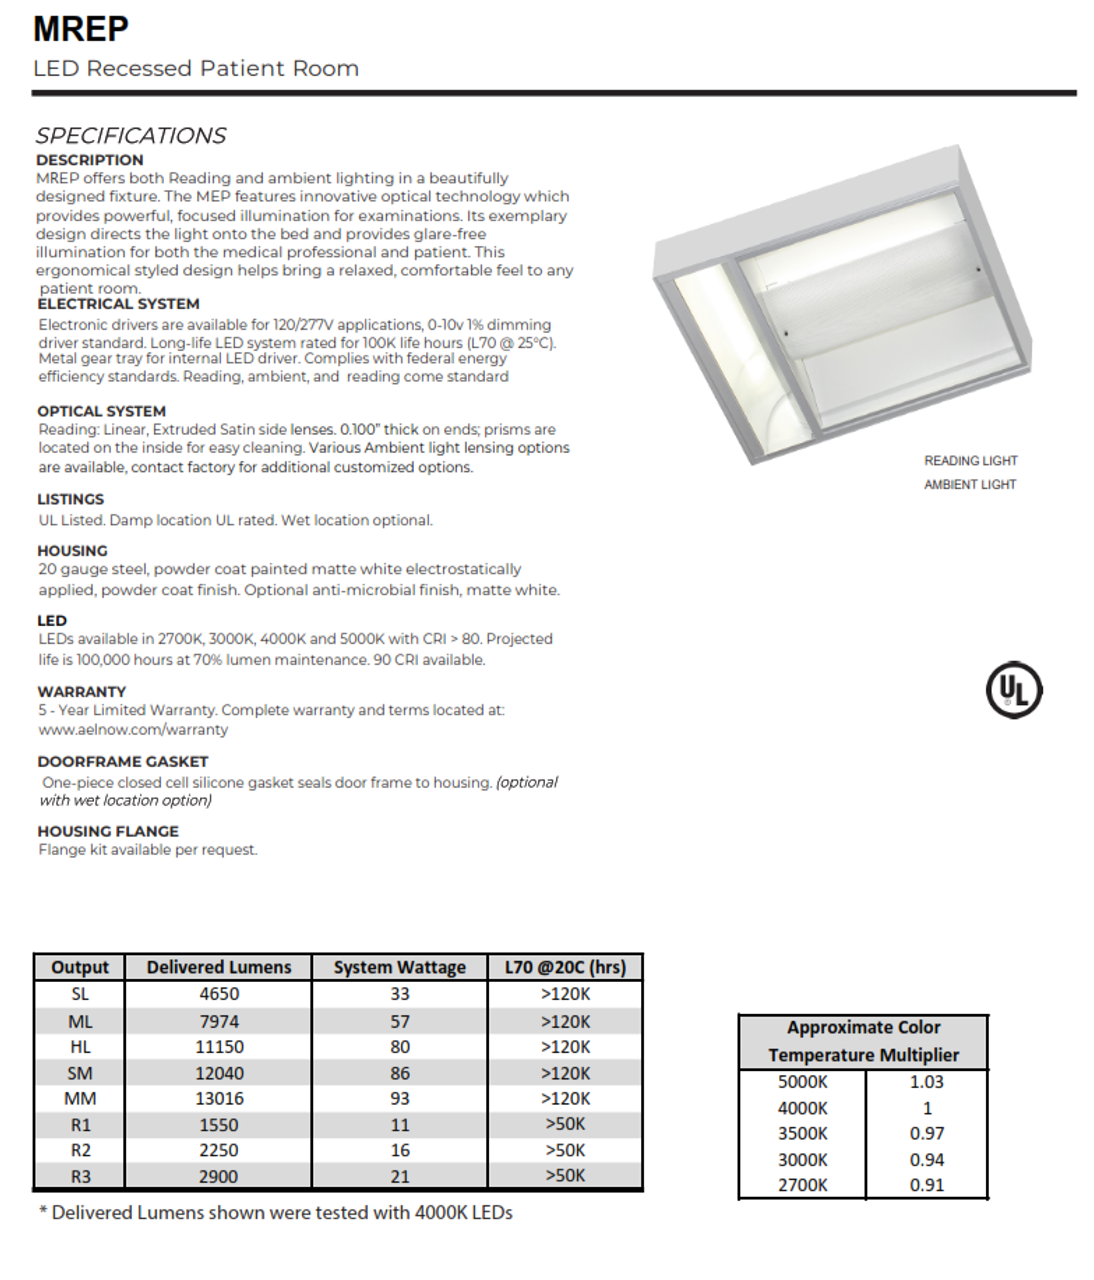 2x2 and 2x4 LED Patient Room Light